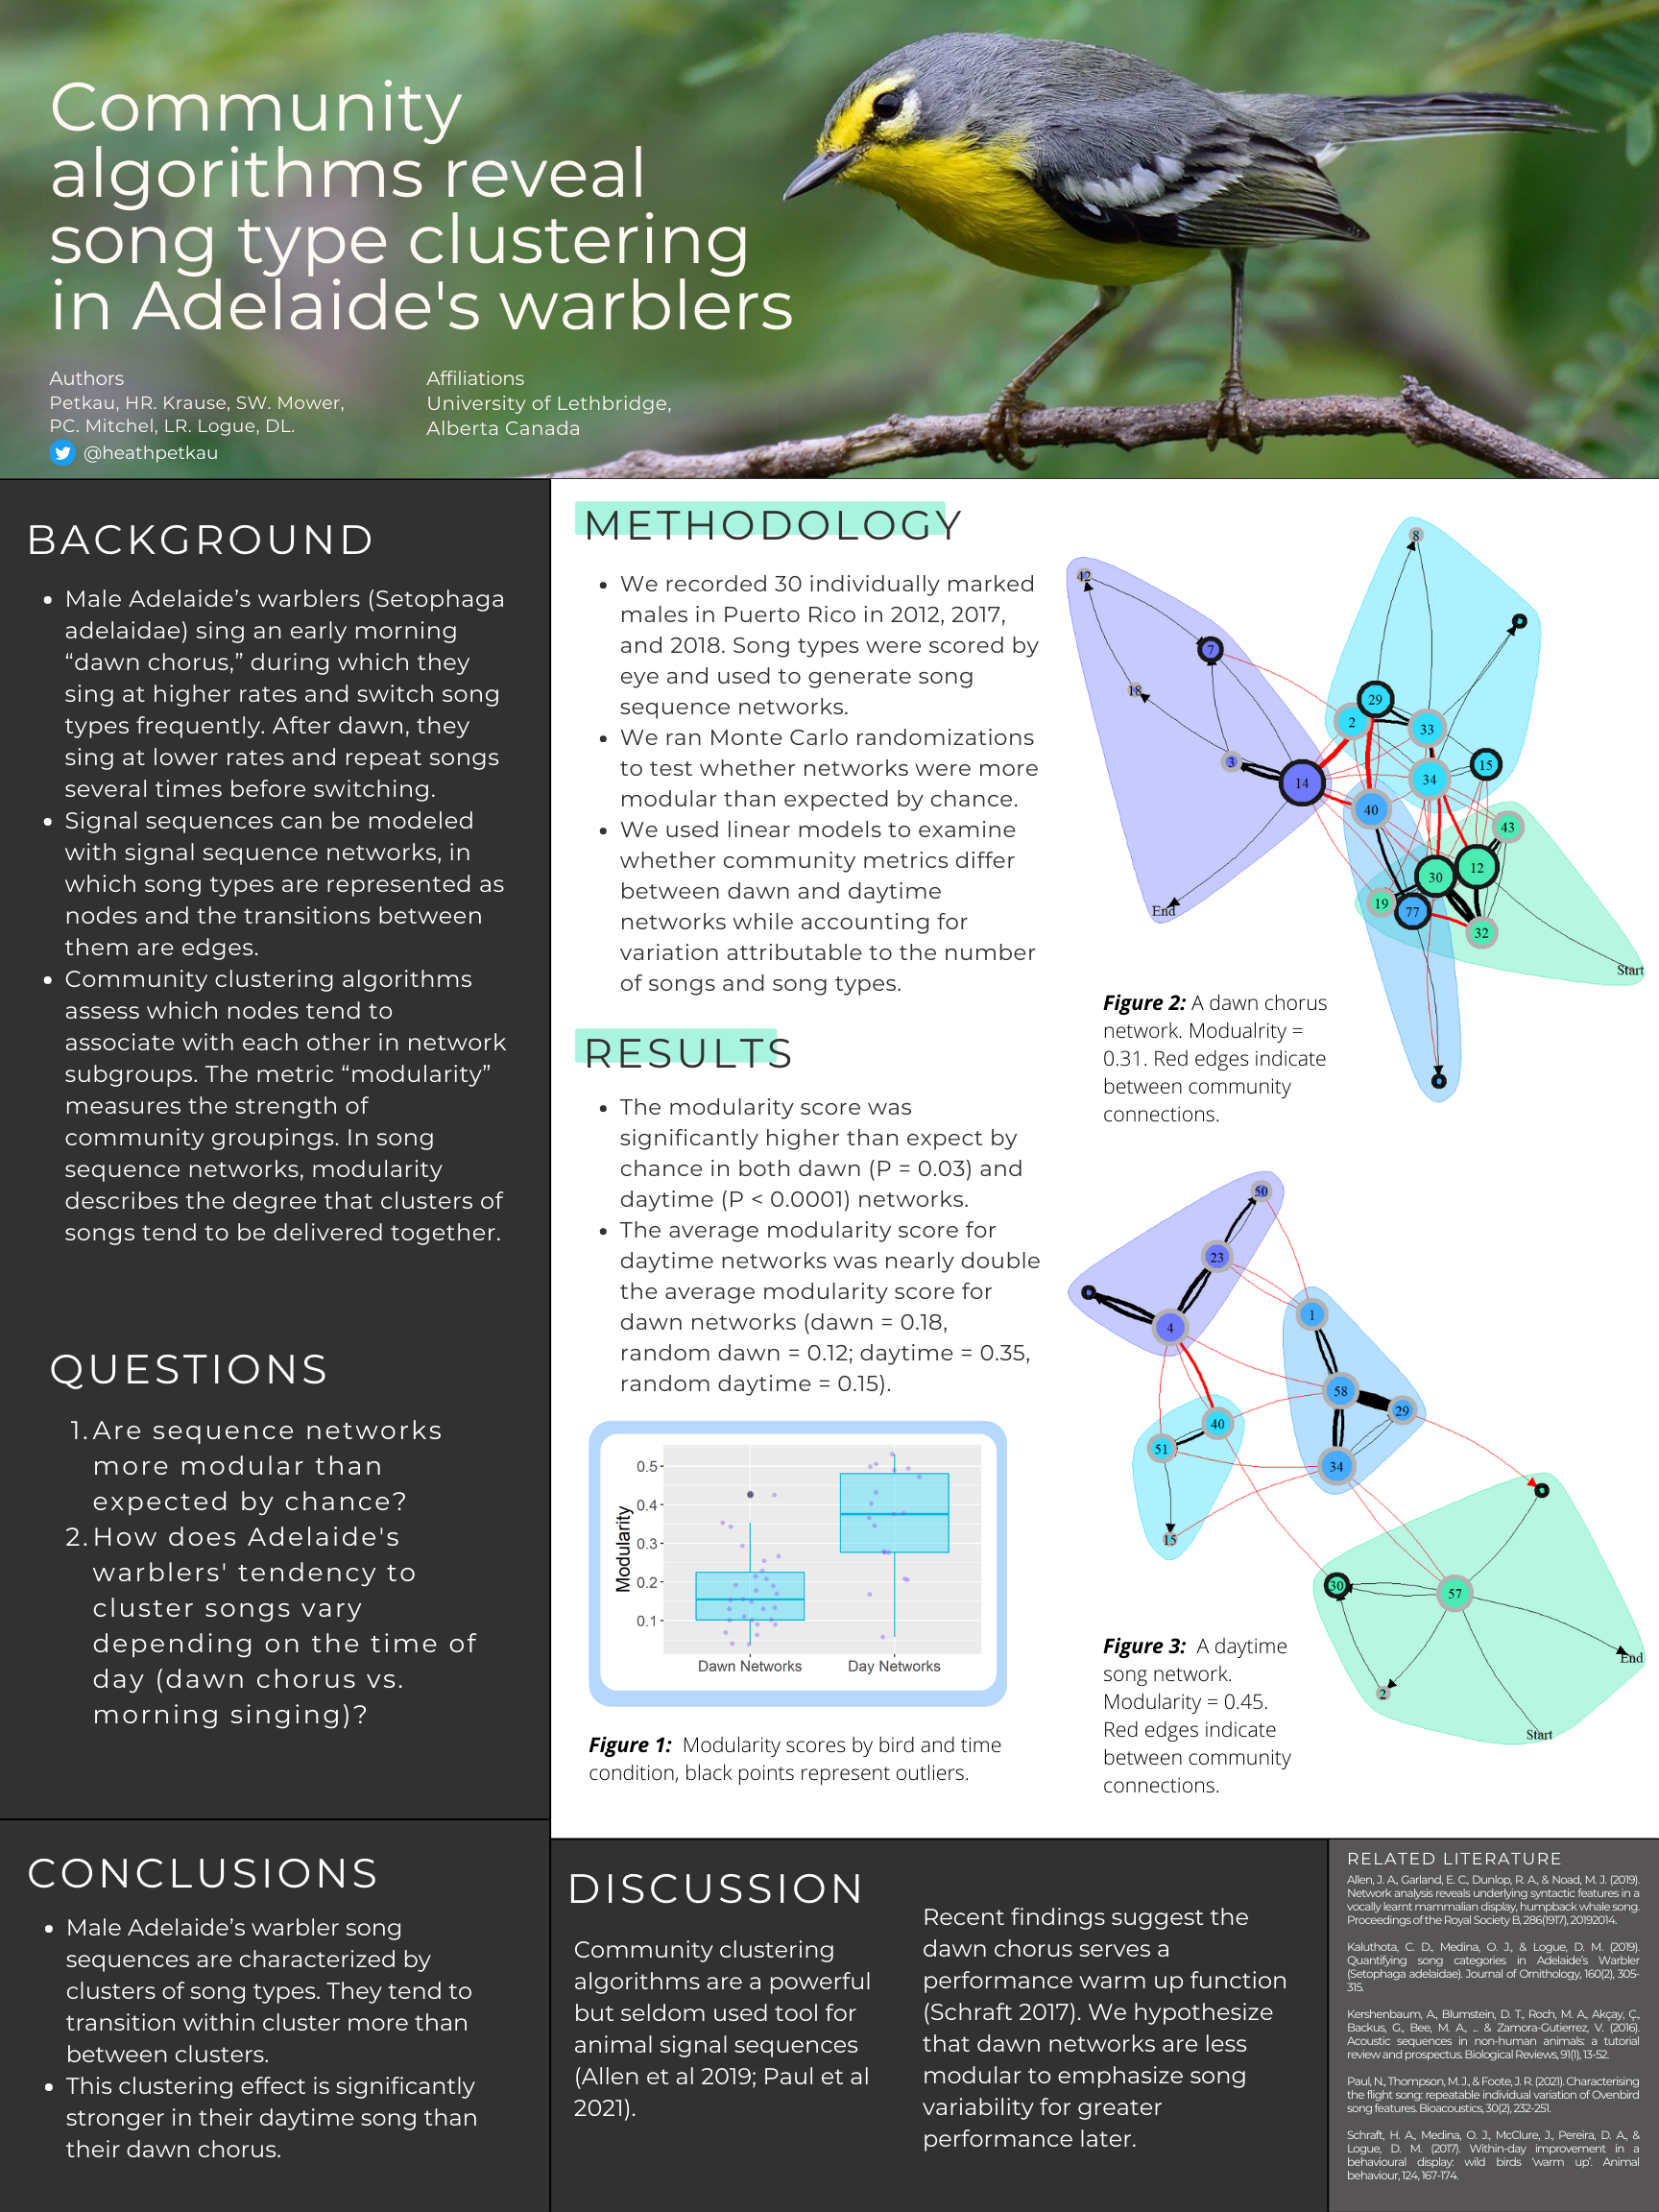 Image: Poster presentation by Heath Petkau for the Animal Behaviour Society conference.